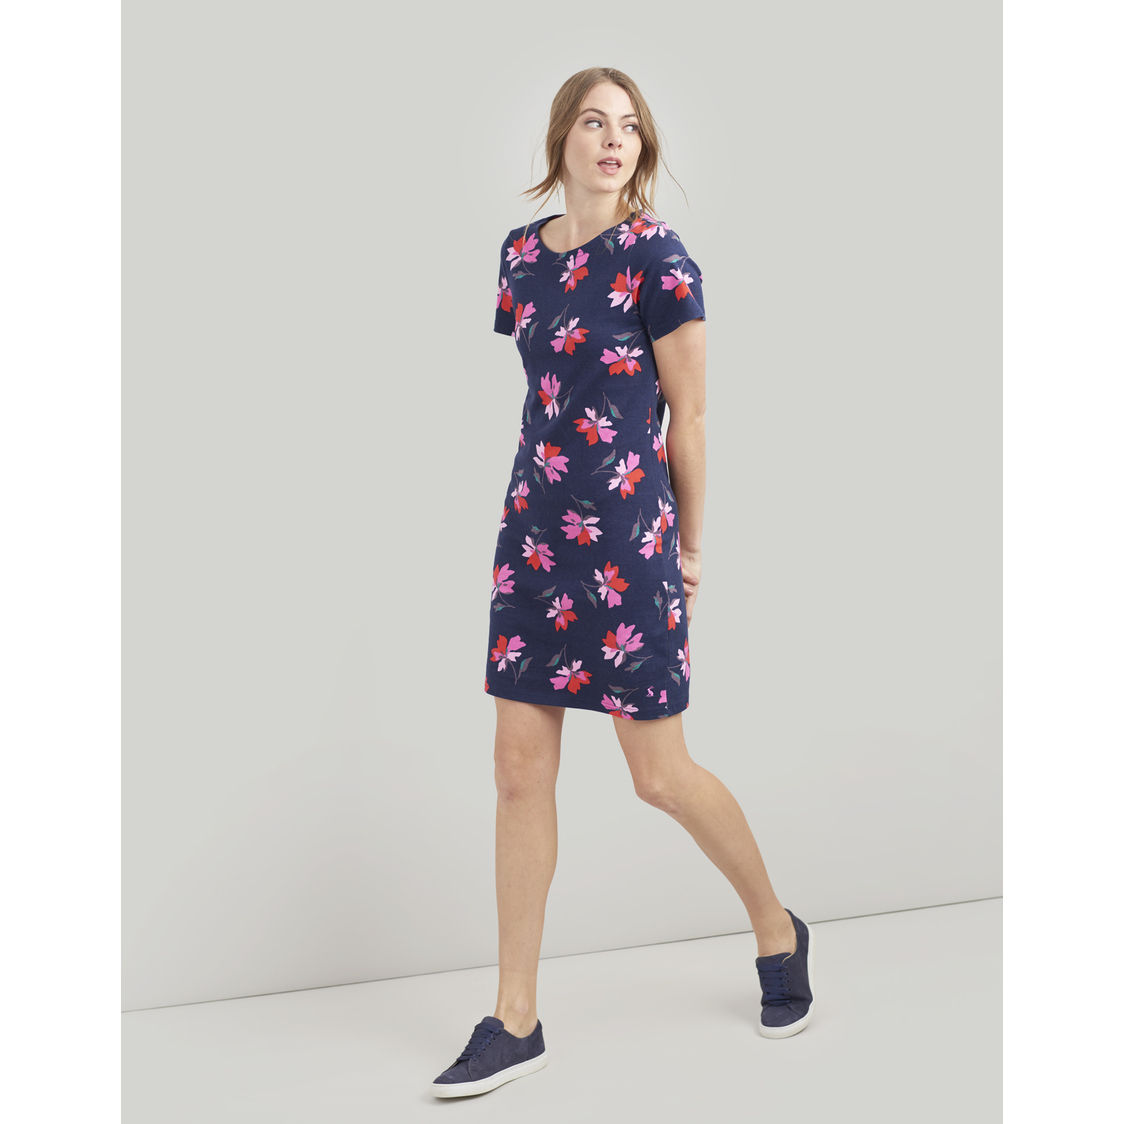 Riviera Print Dress With Short Sleeves